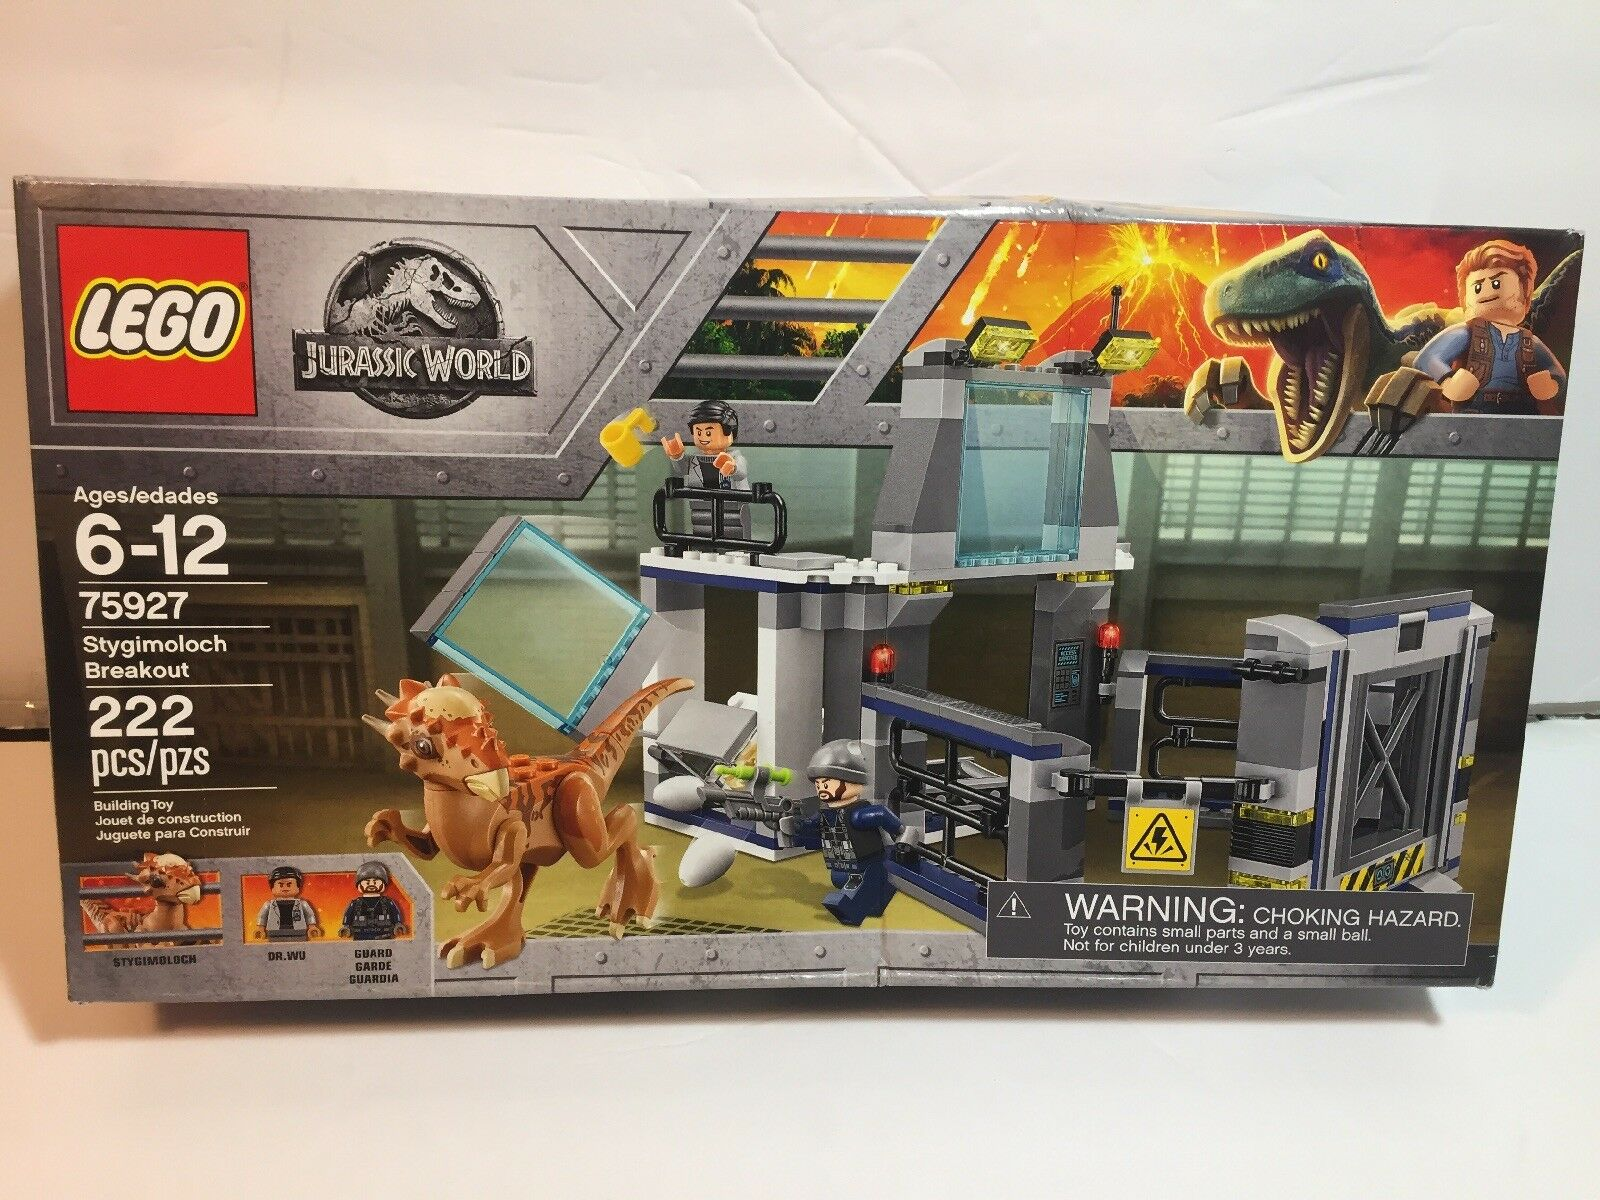 Lego 75927 Stygimoloch Breakout .. BOX HAS WEAR